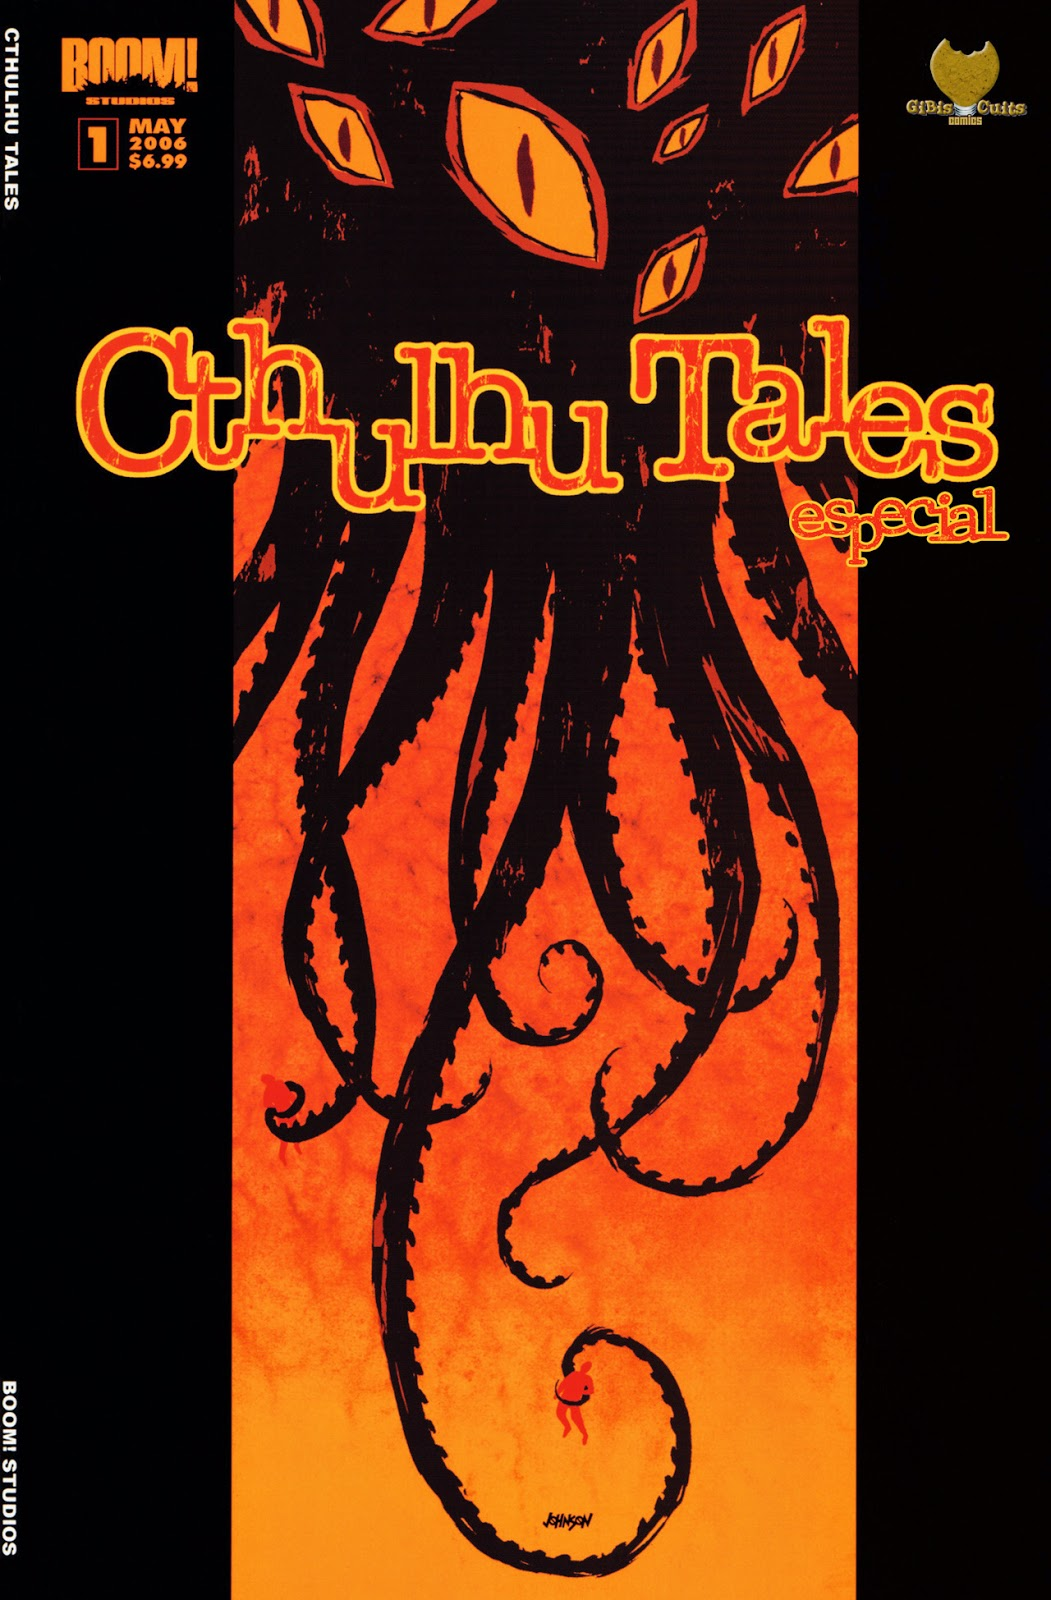 http://www.mediafire.com/download/f7n4kn6ben7len7/Cthulhu+Tales+Especial+2006+%28Gibiscuits%29.cbr